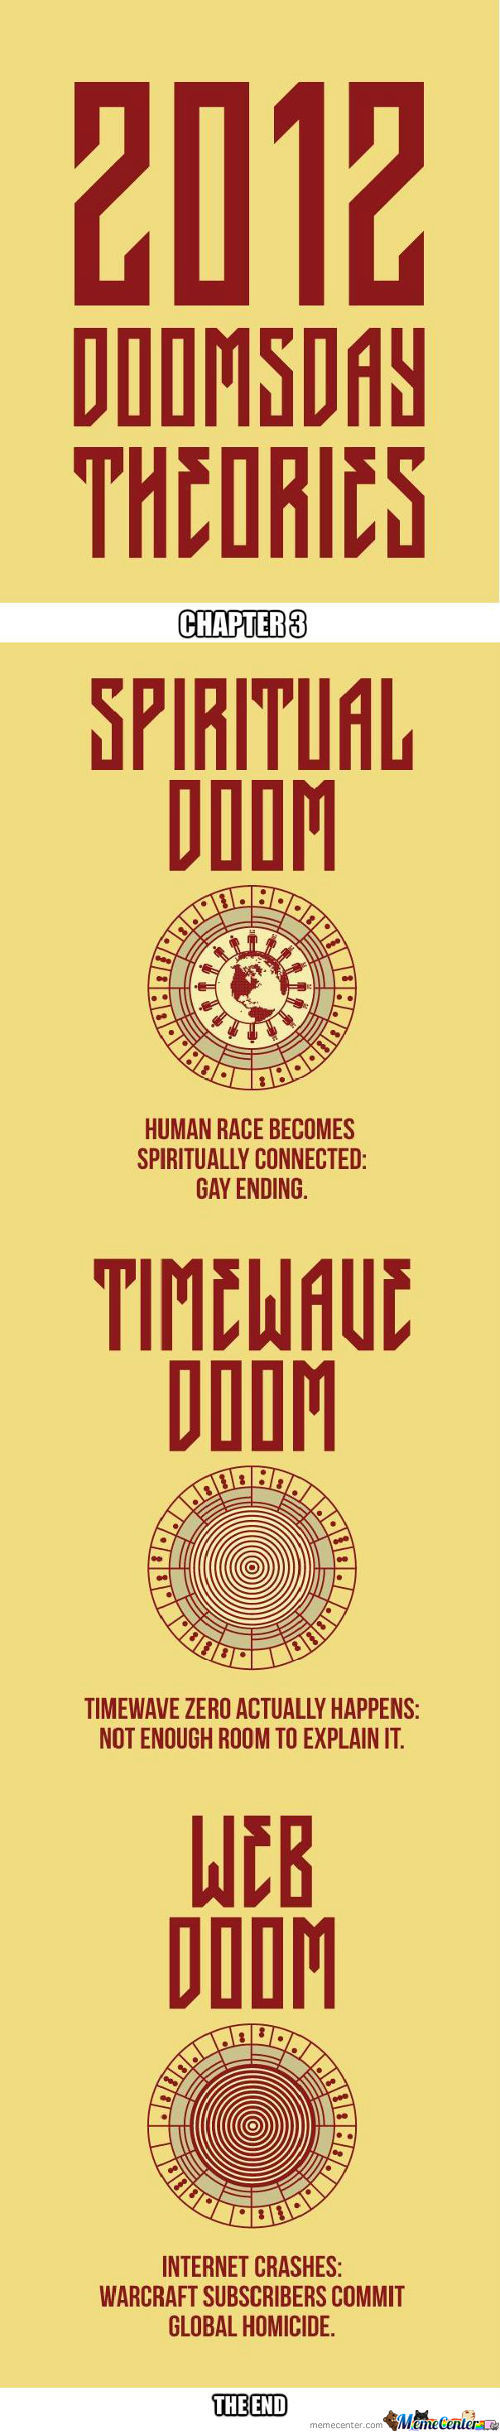 Doomsday Theories Chapter 3